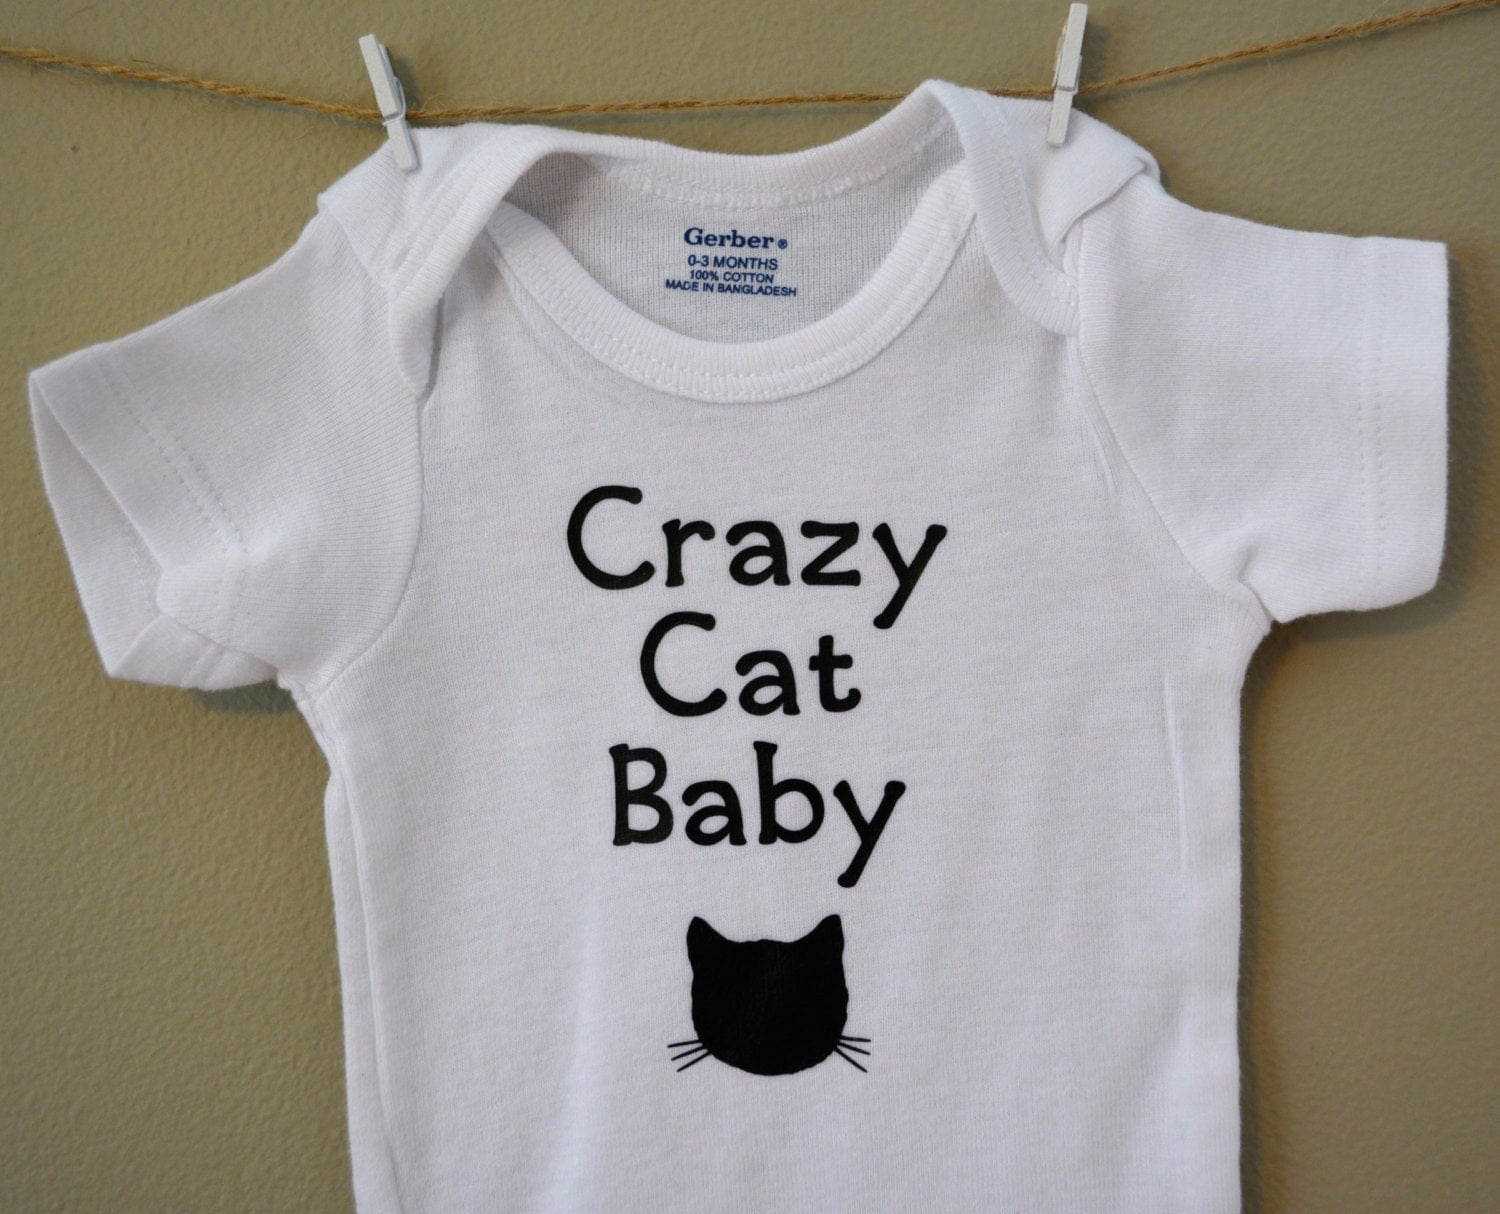 Dress your child in style with Cat baby clothes! From stunning baby onesies and shirts, choose from great styles or upload your own images. Get creating now!